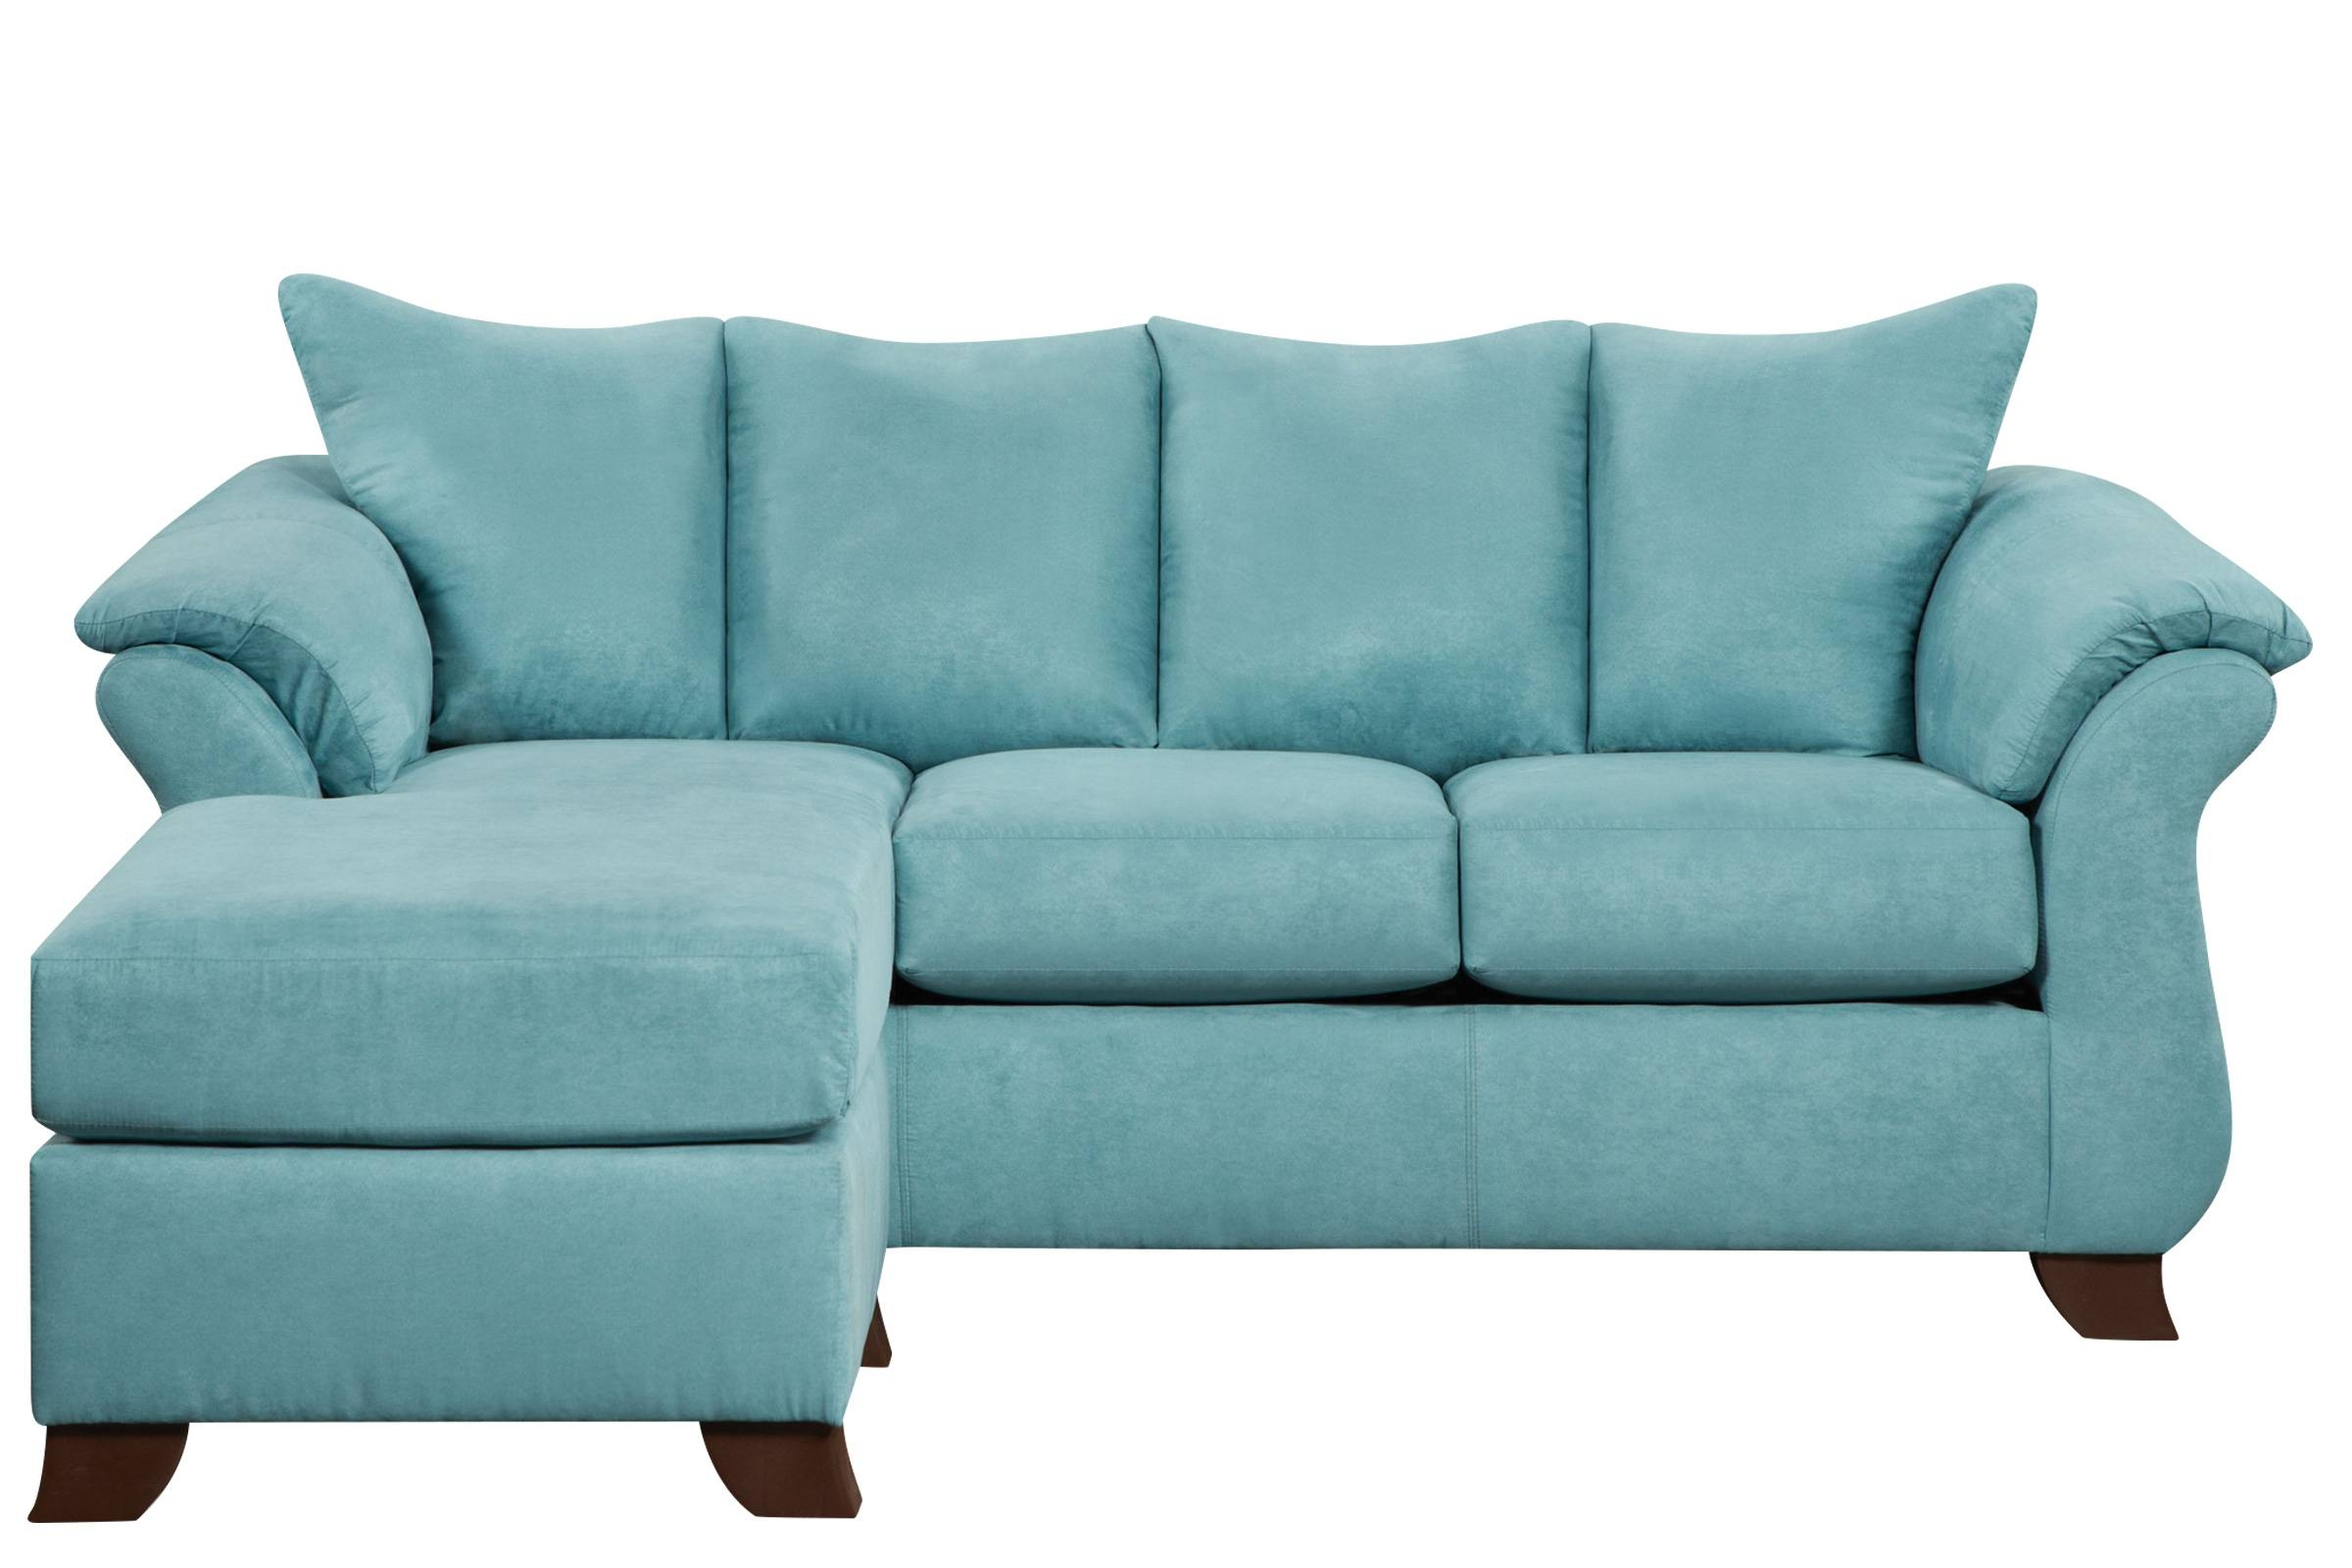 Blair Leather Sofa – Thesofa In Cool Home Design | Wuoizz intended for Blair Leather Sofas (Image 5 of 15)